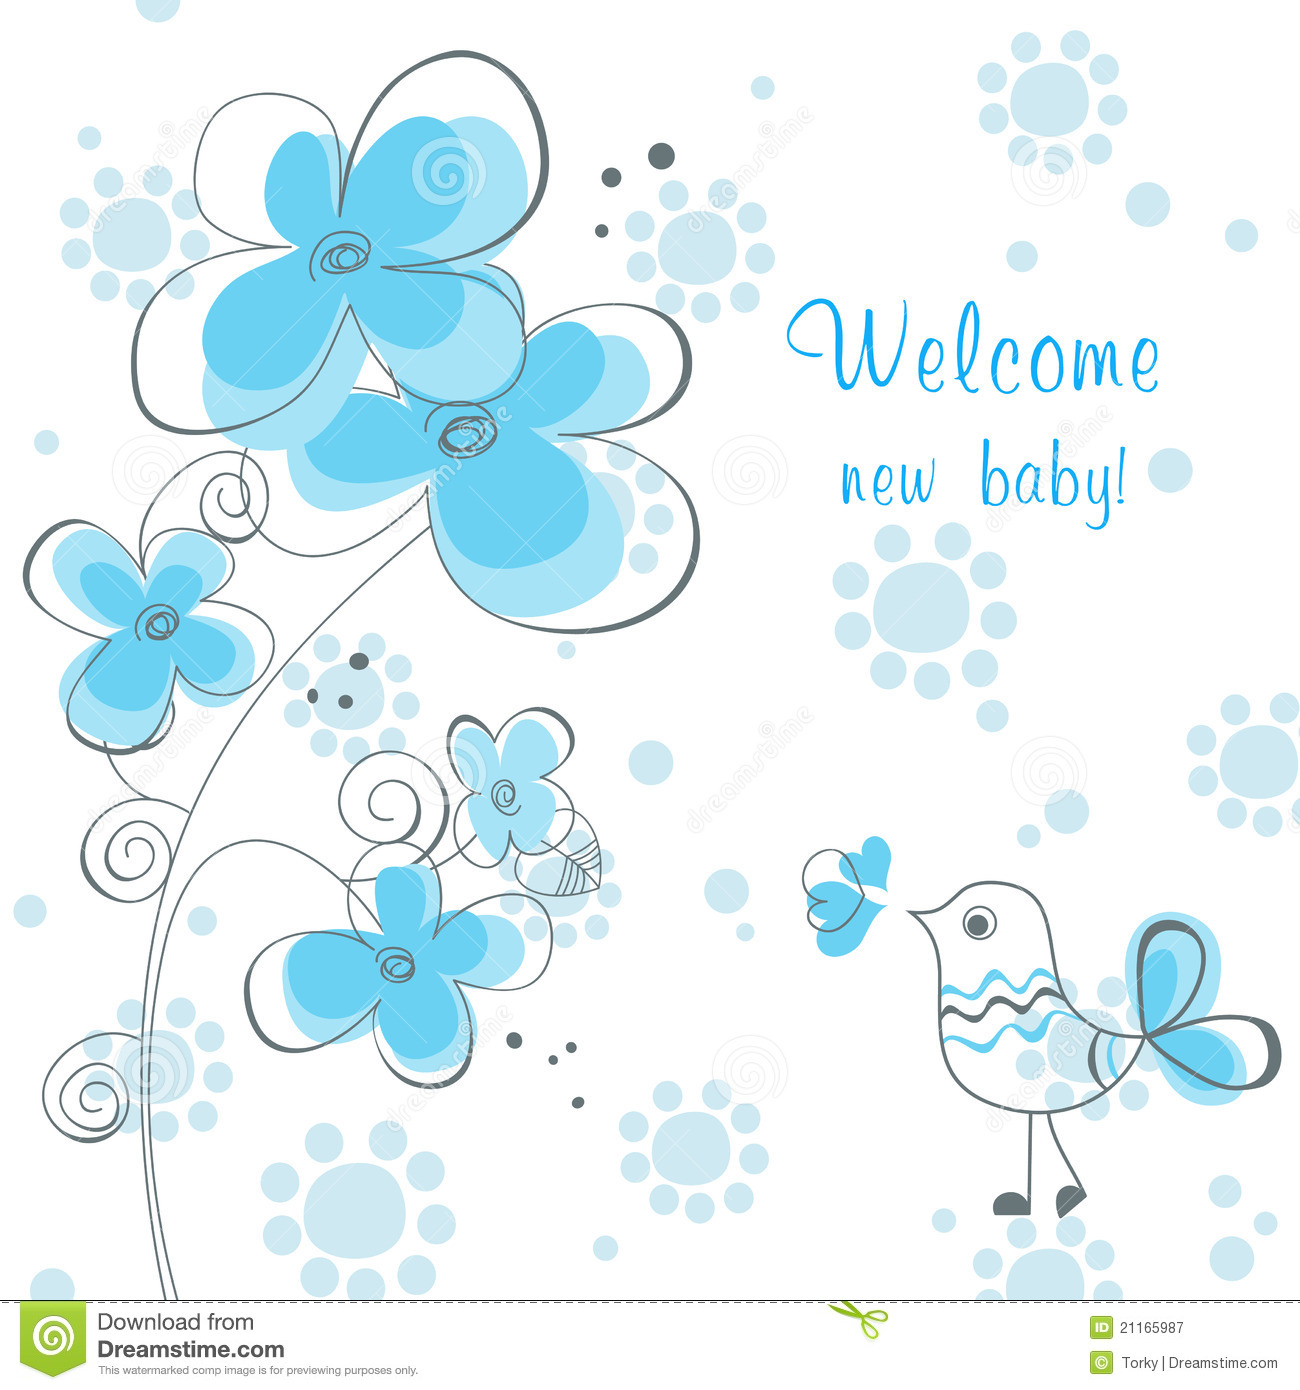 baby boy clipart shower - photo #43